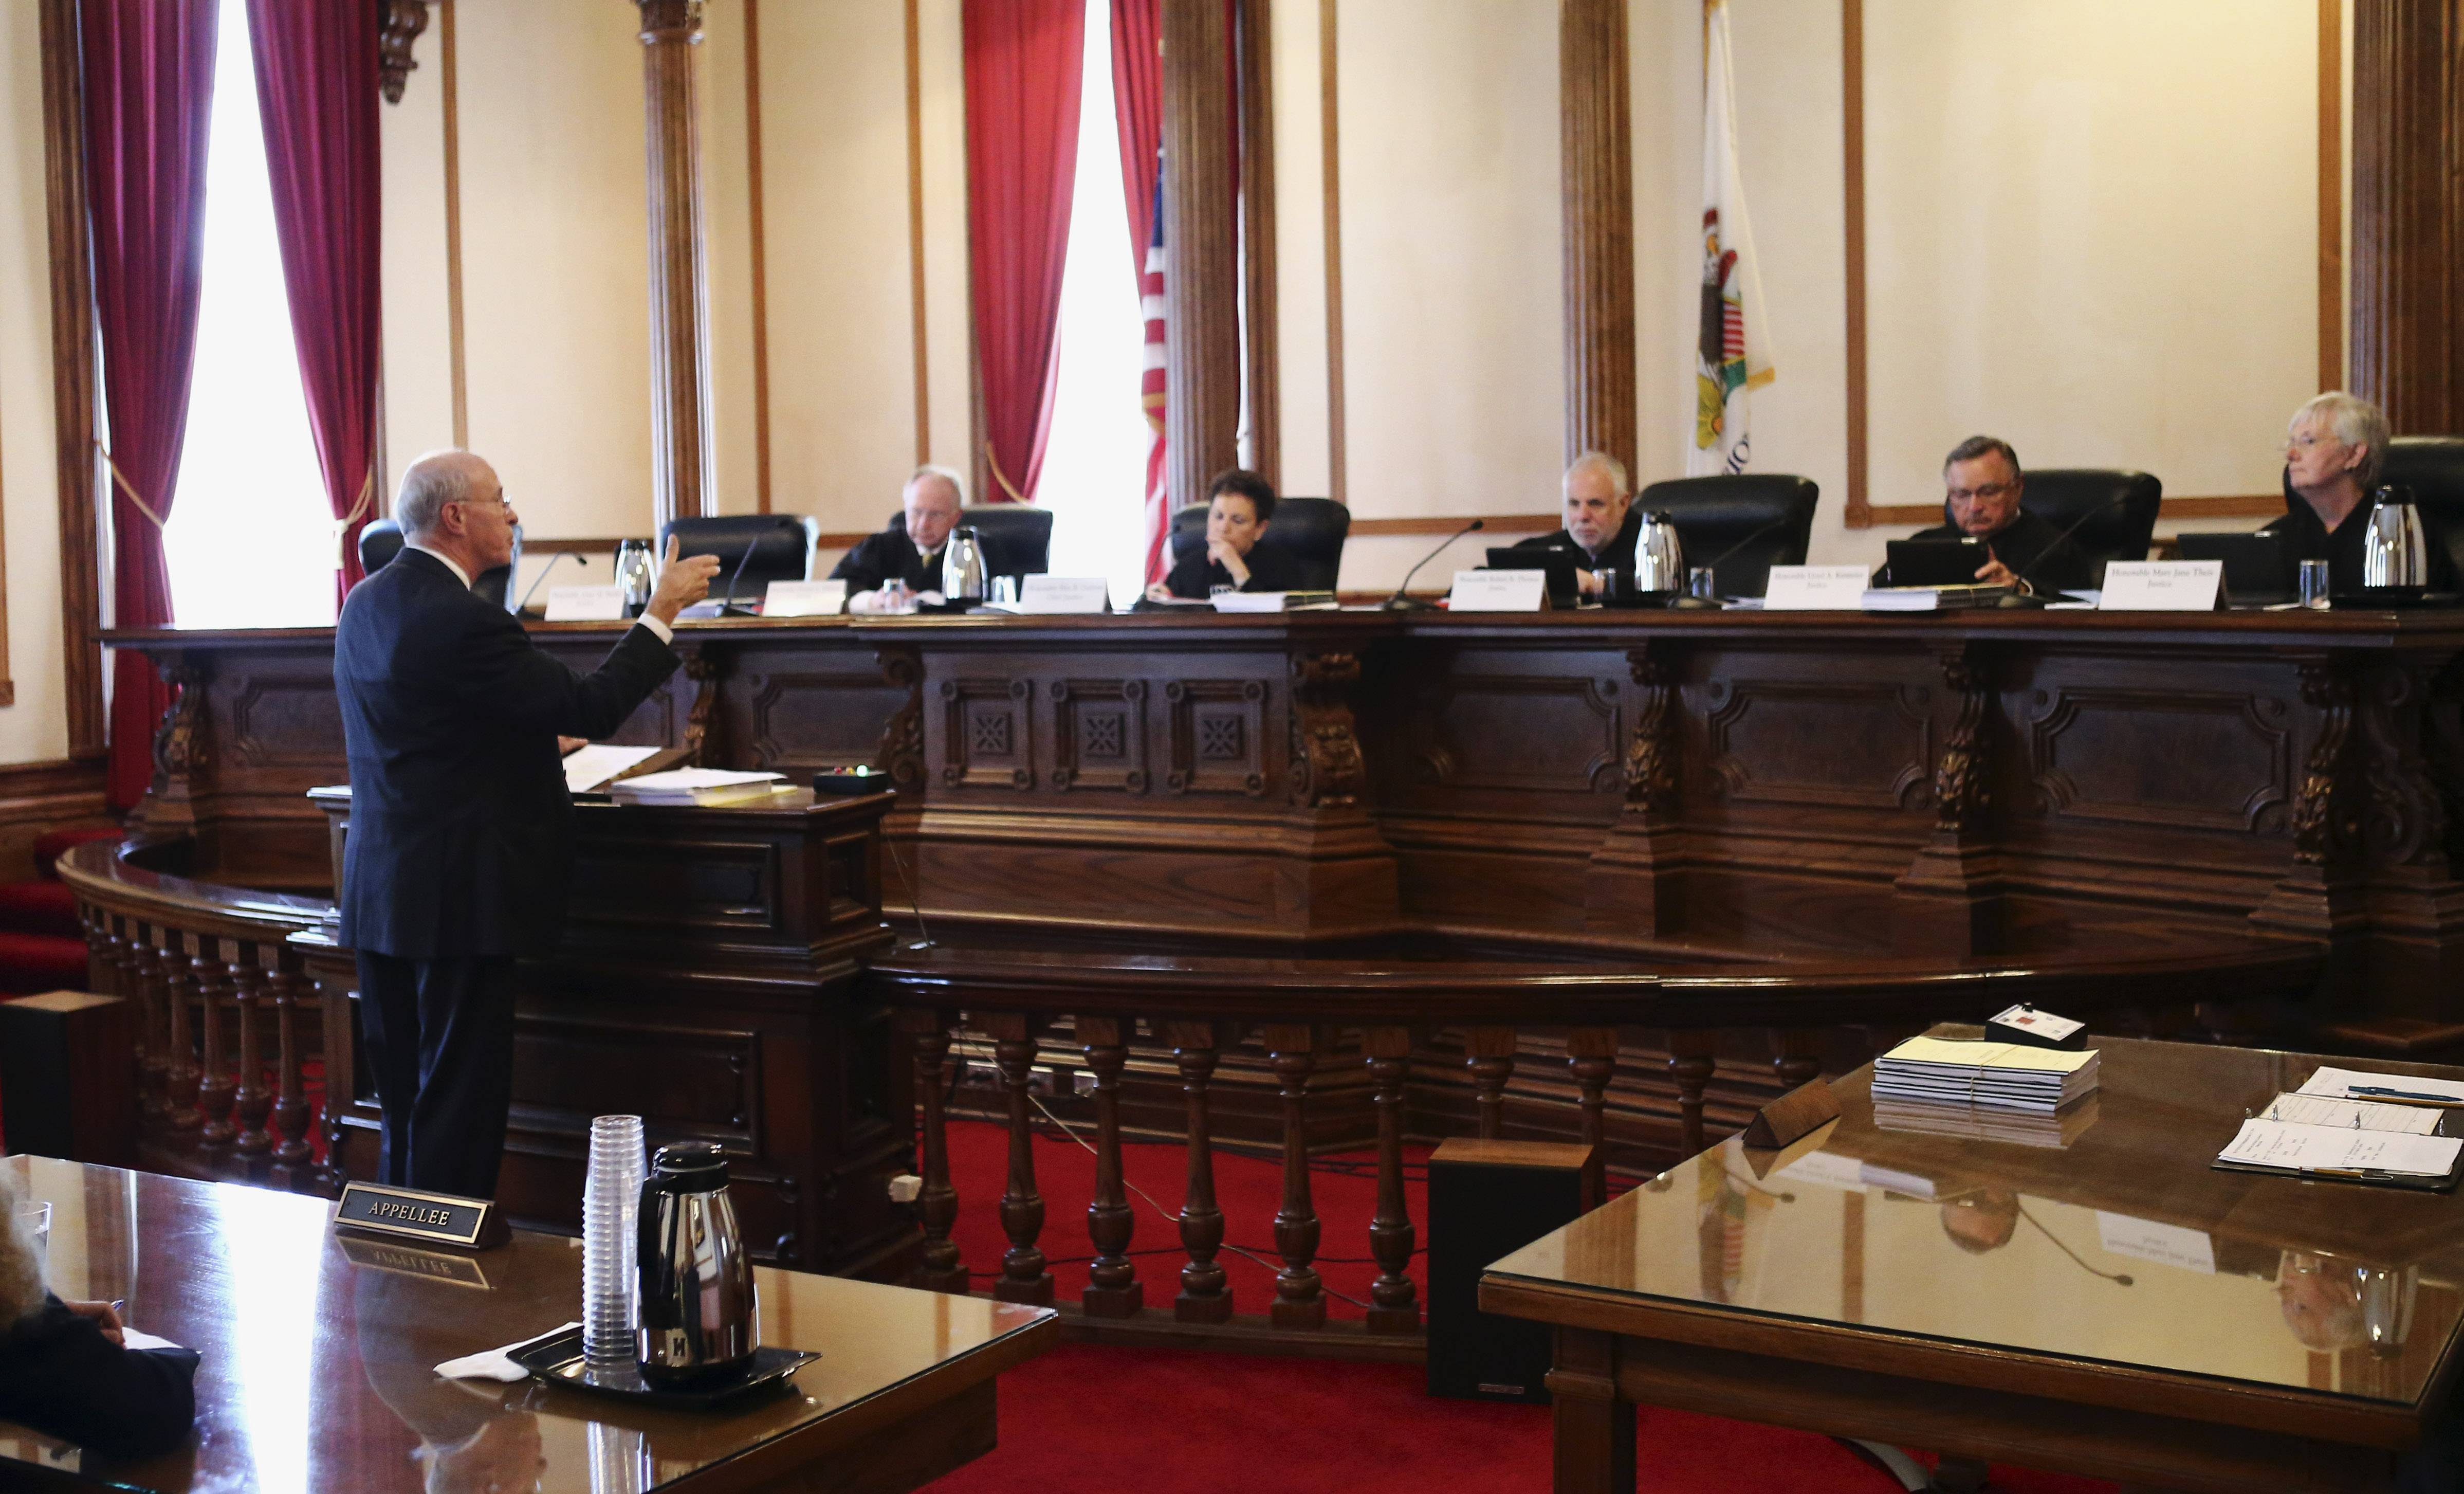 Attorney Michael Reagan speaks on behalf of the appellant before the Illinois Supreme Court during oral arguments on Wednesday at the historic Third District Appellate Courthouse in Ottawa.